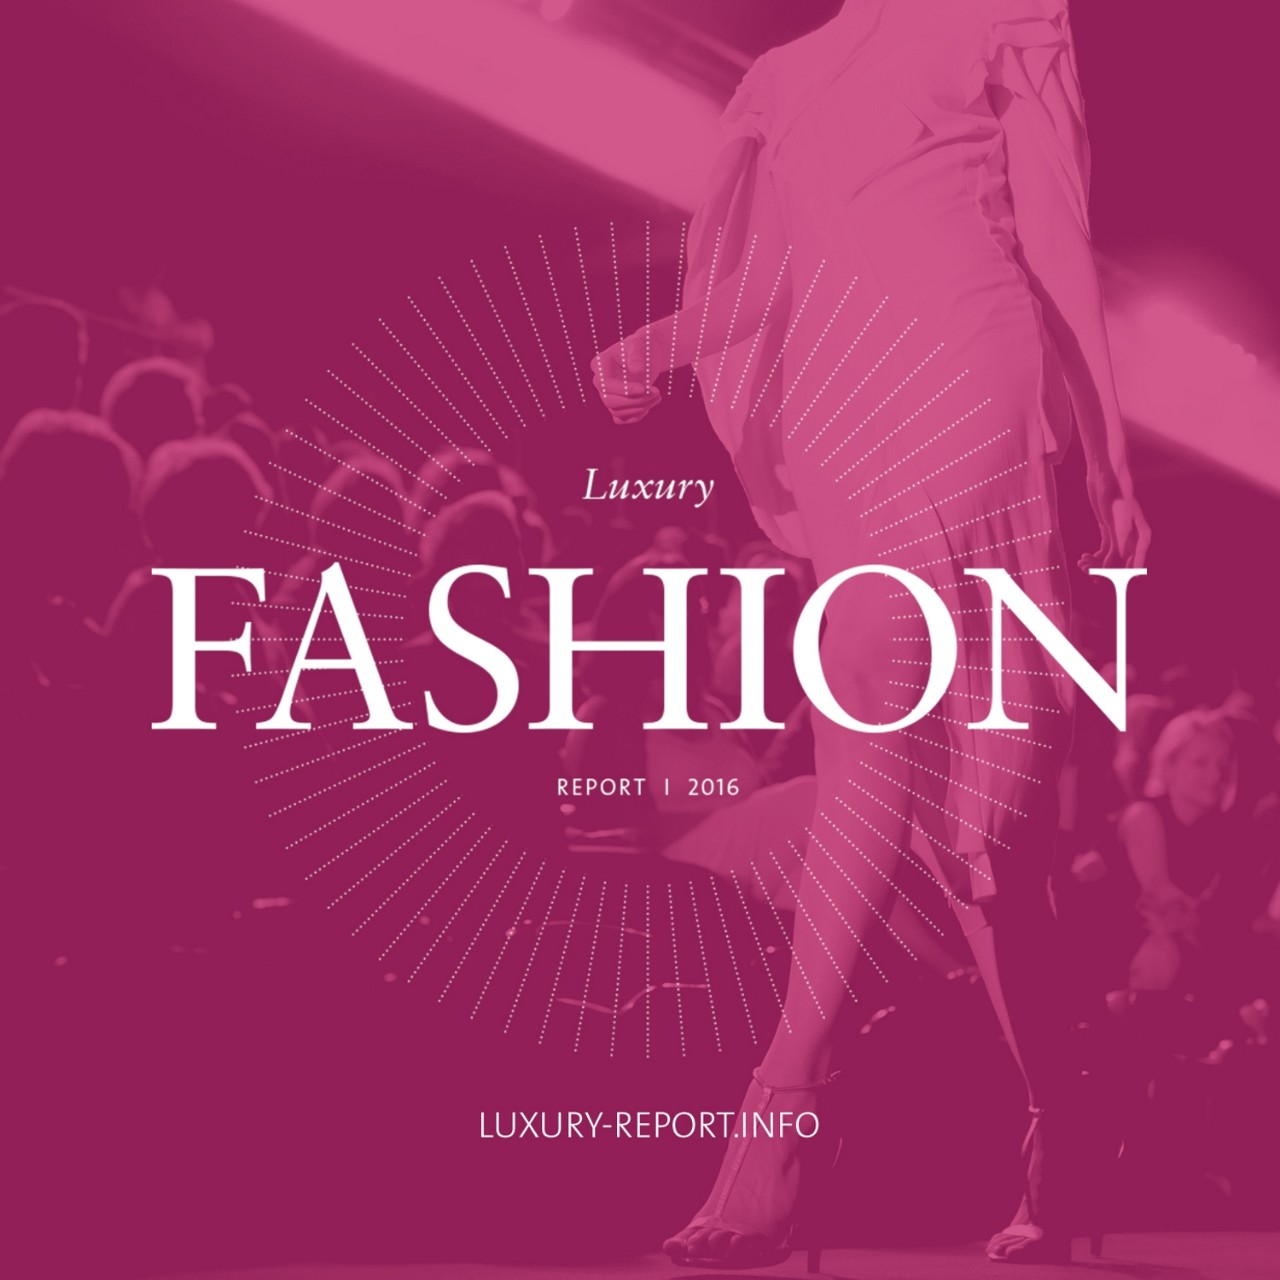 Luxury Fashion Report